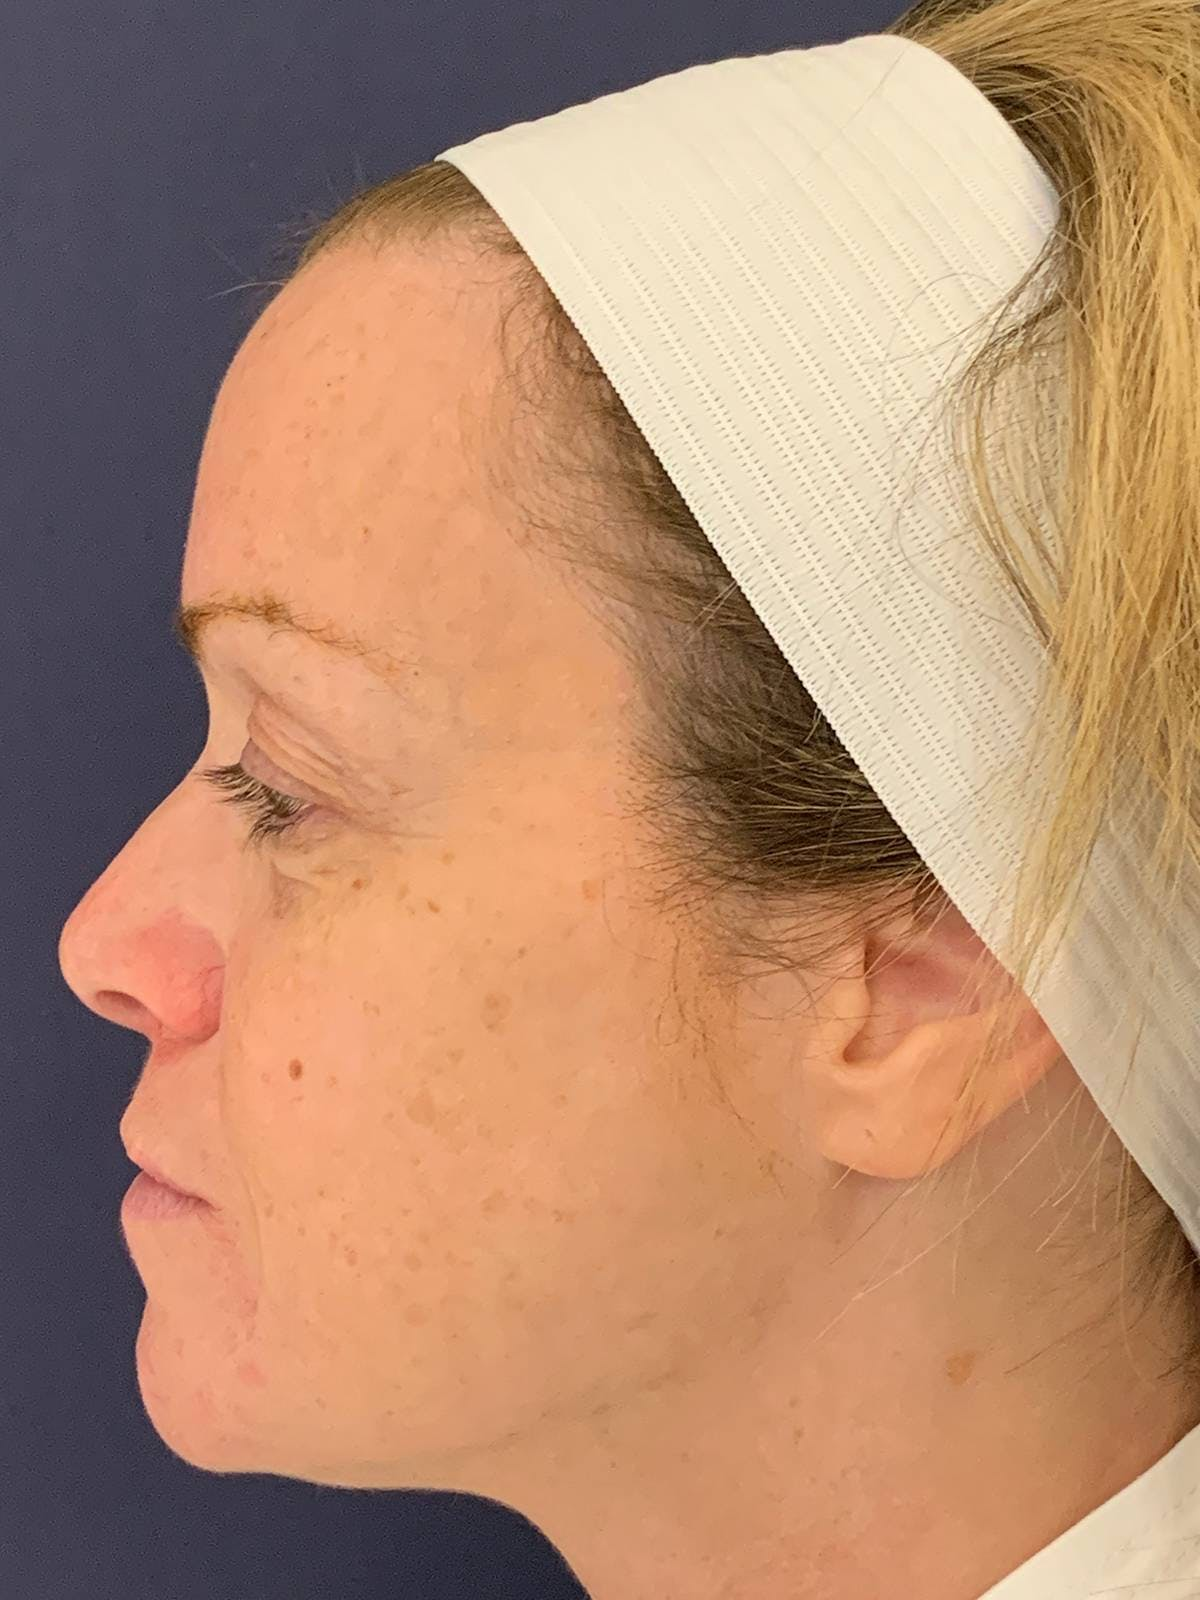 Blepharoplasty (Eyelid Surgery) Gallery - Patient 4447876 - Image 3